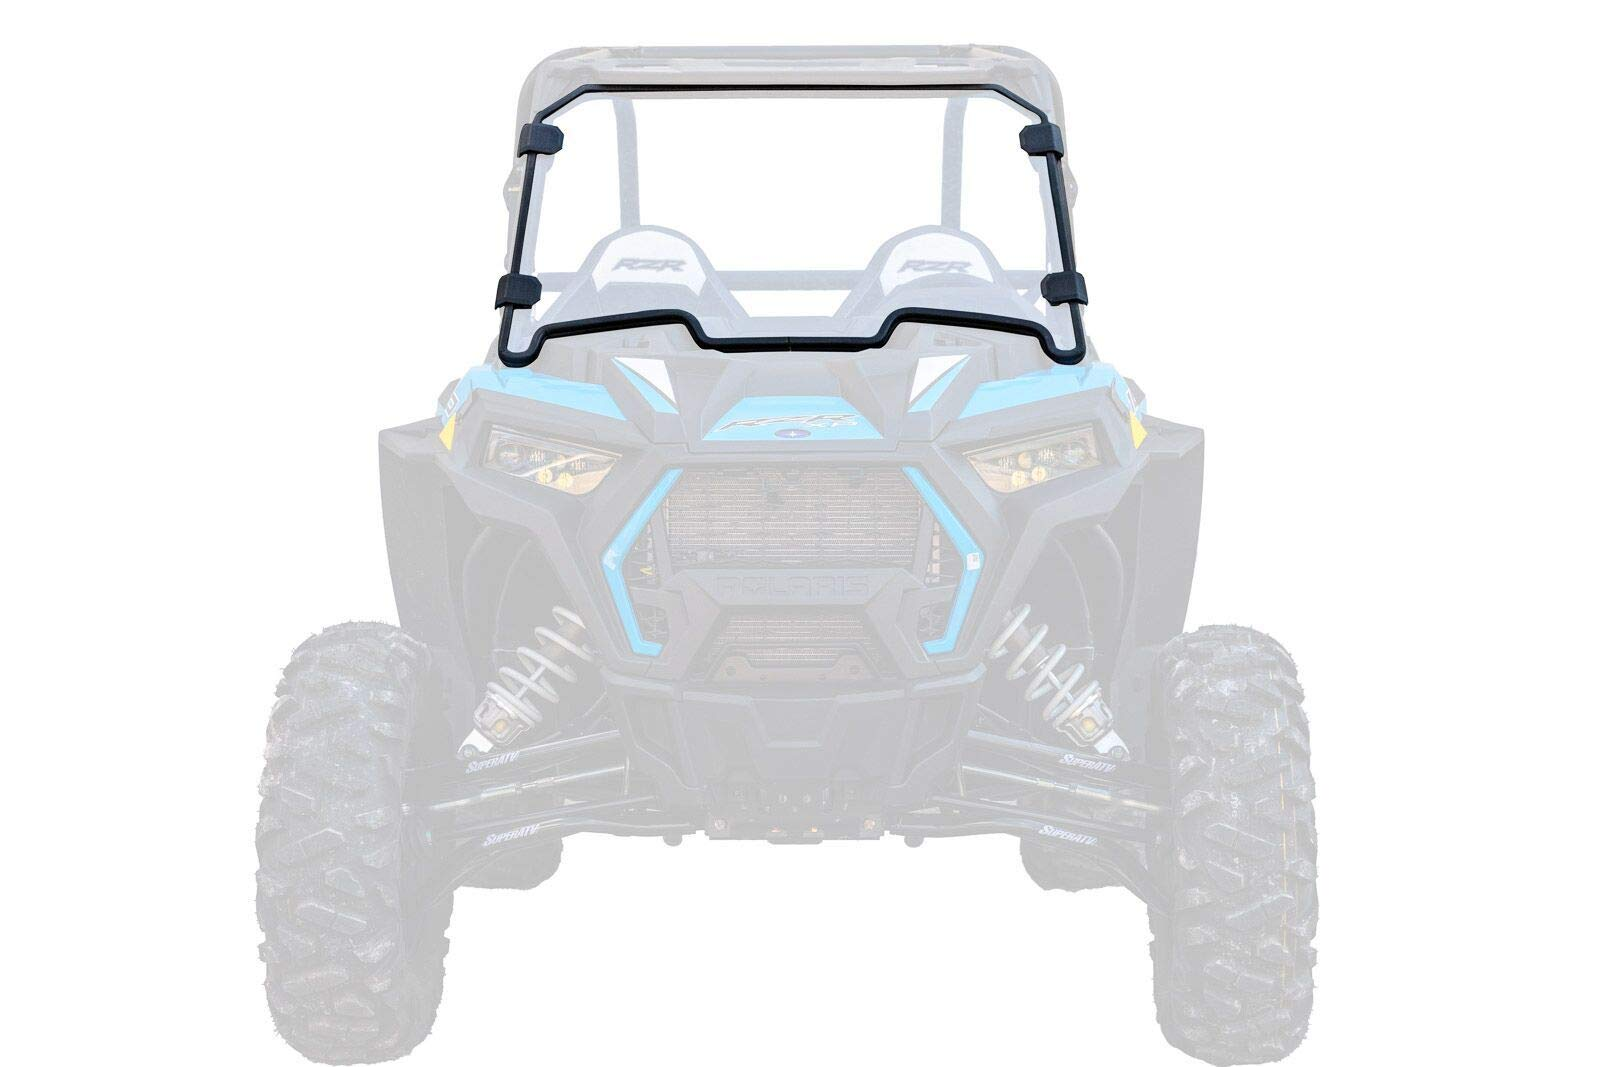 SuperATV Heavy Duty Clear Scratch Resistant Full Windshield for Polaris RZR XP 1000/4 1000 (2019+) - Installs in 5 Minutes!